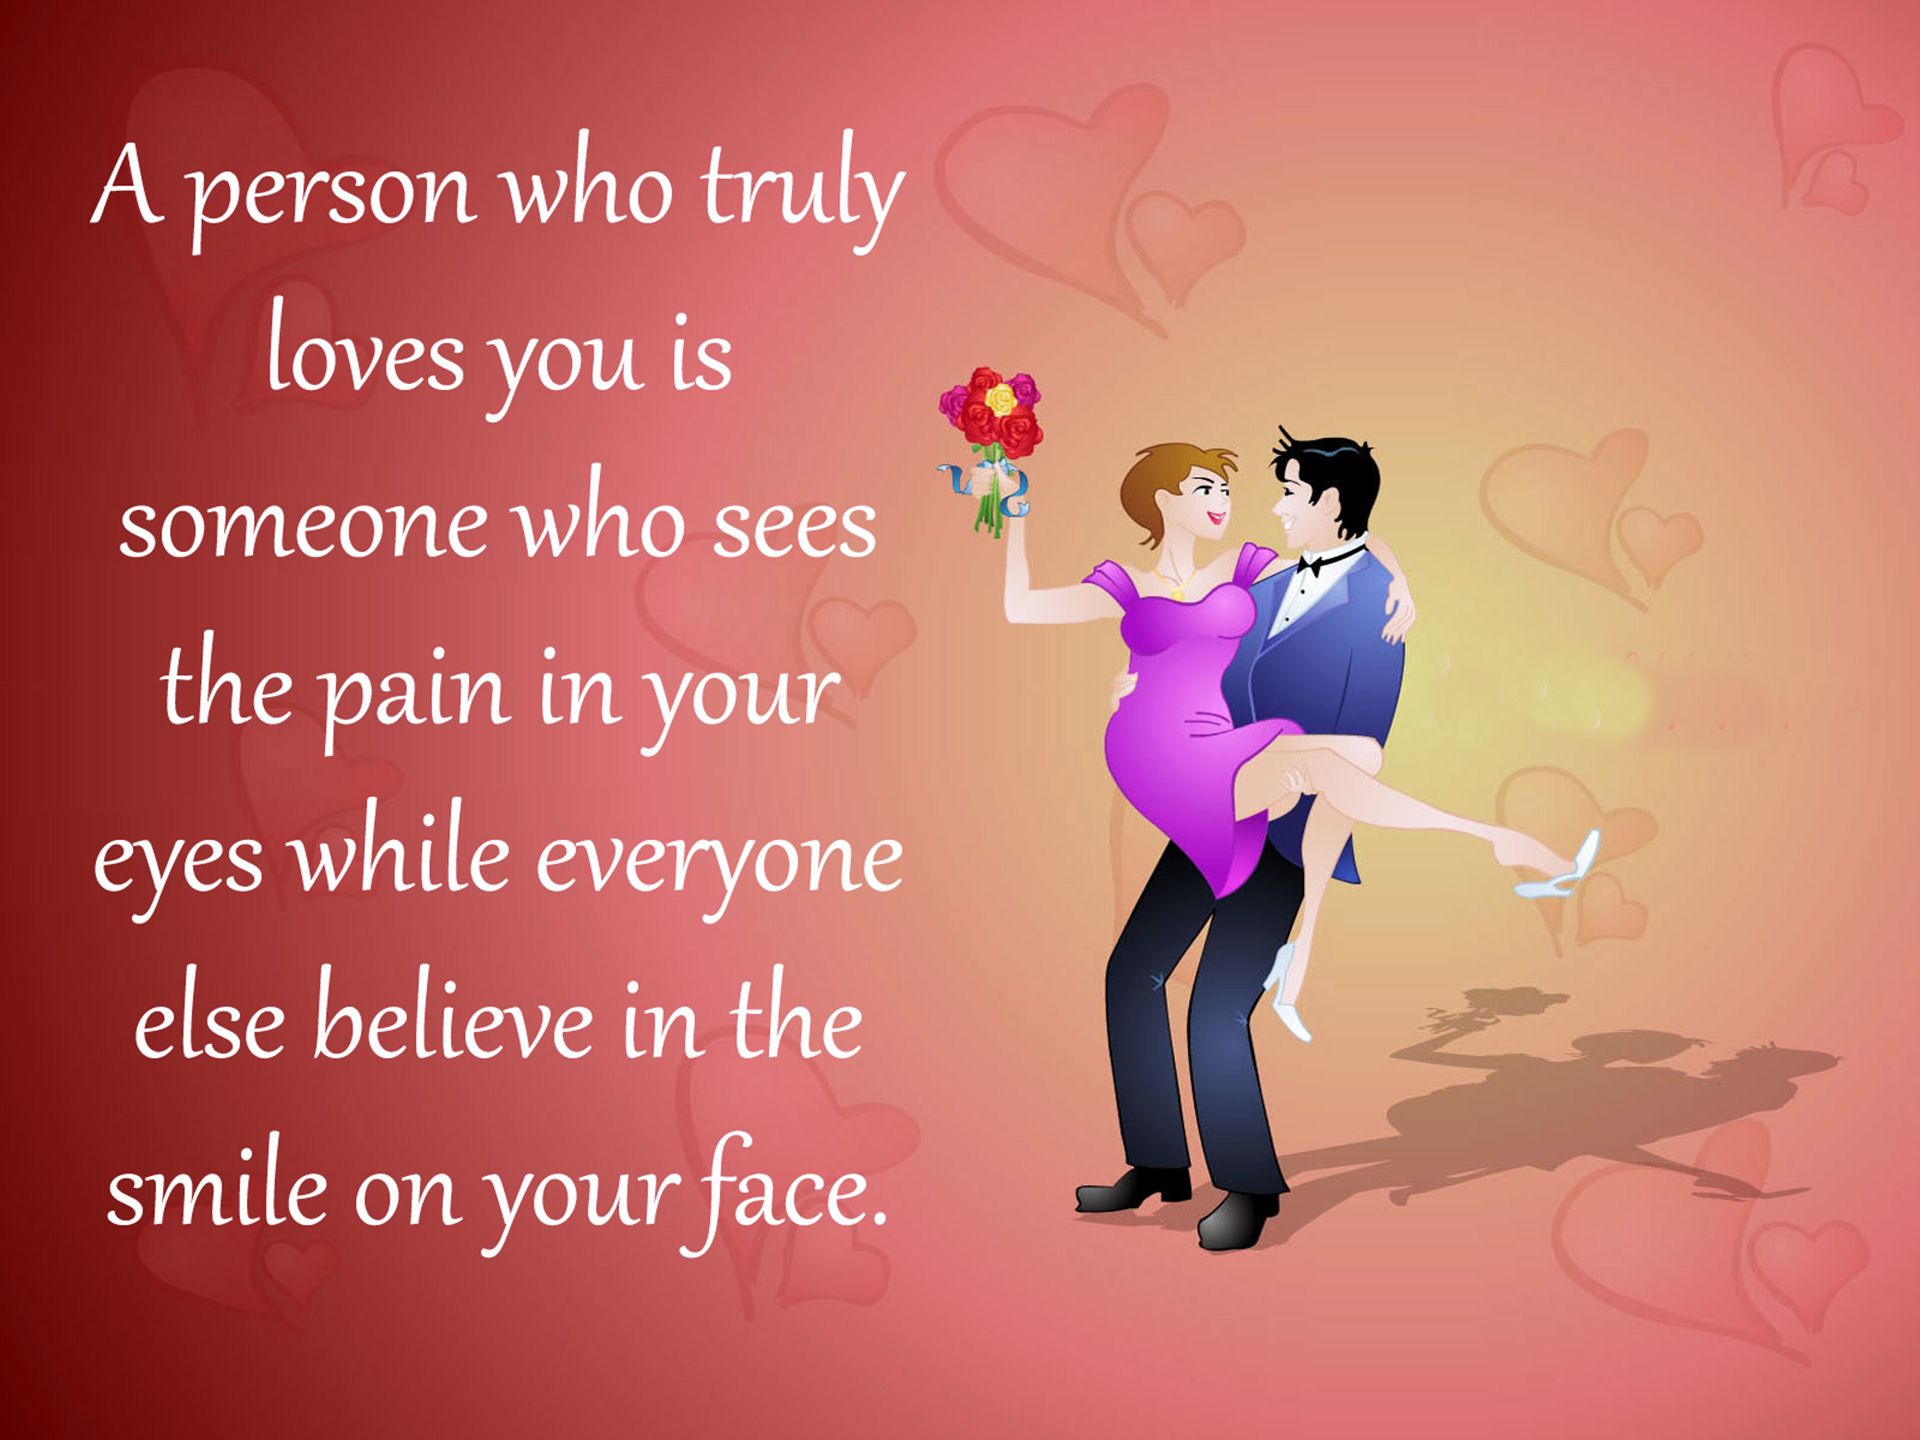 Romantic Love Quotes For Her 70 Romantic Love Quotes For Her From The Heart